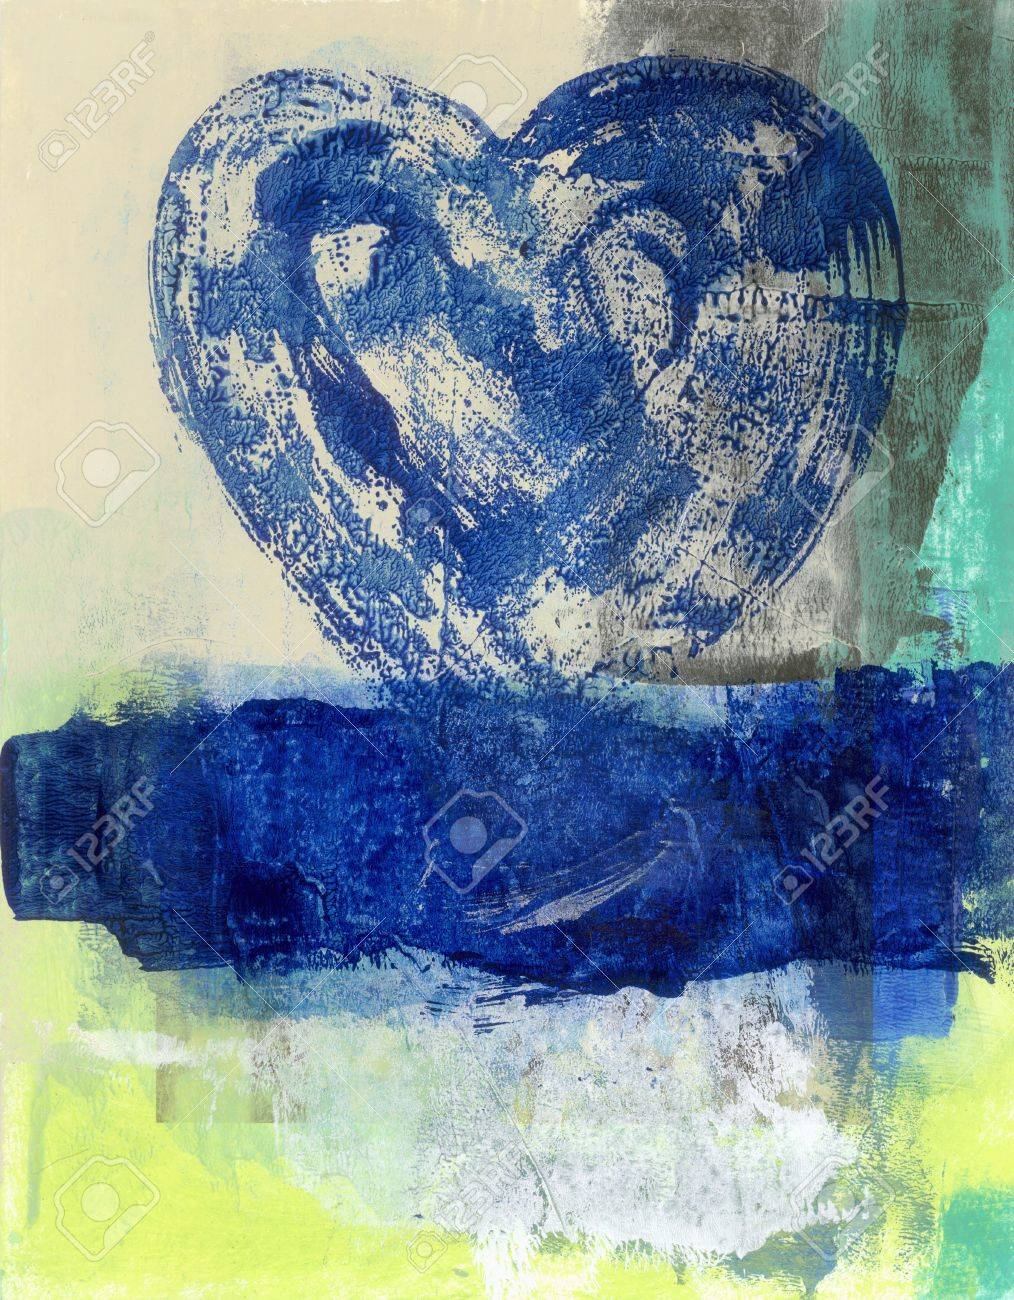 Abstract painting of a blue heart rising from a blue water - 15512654